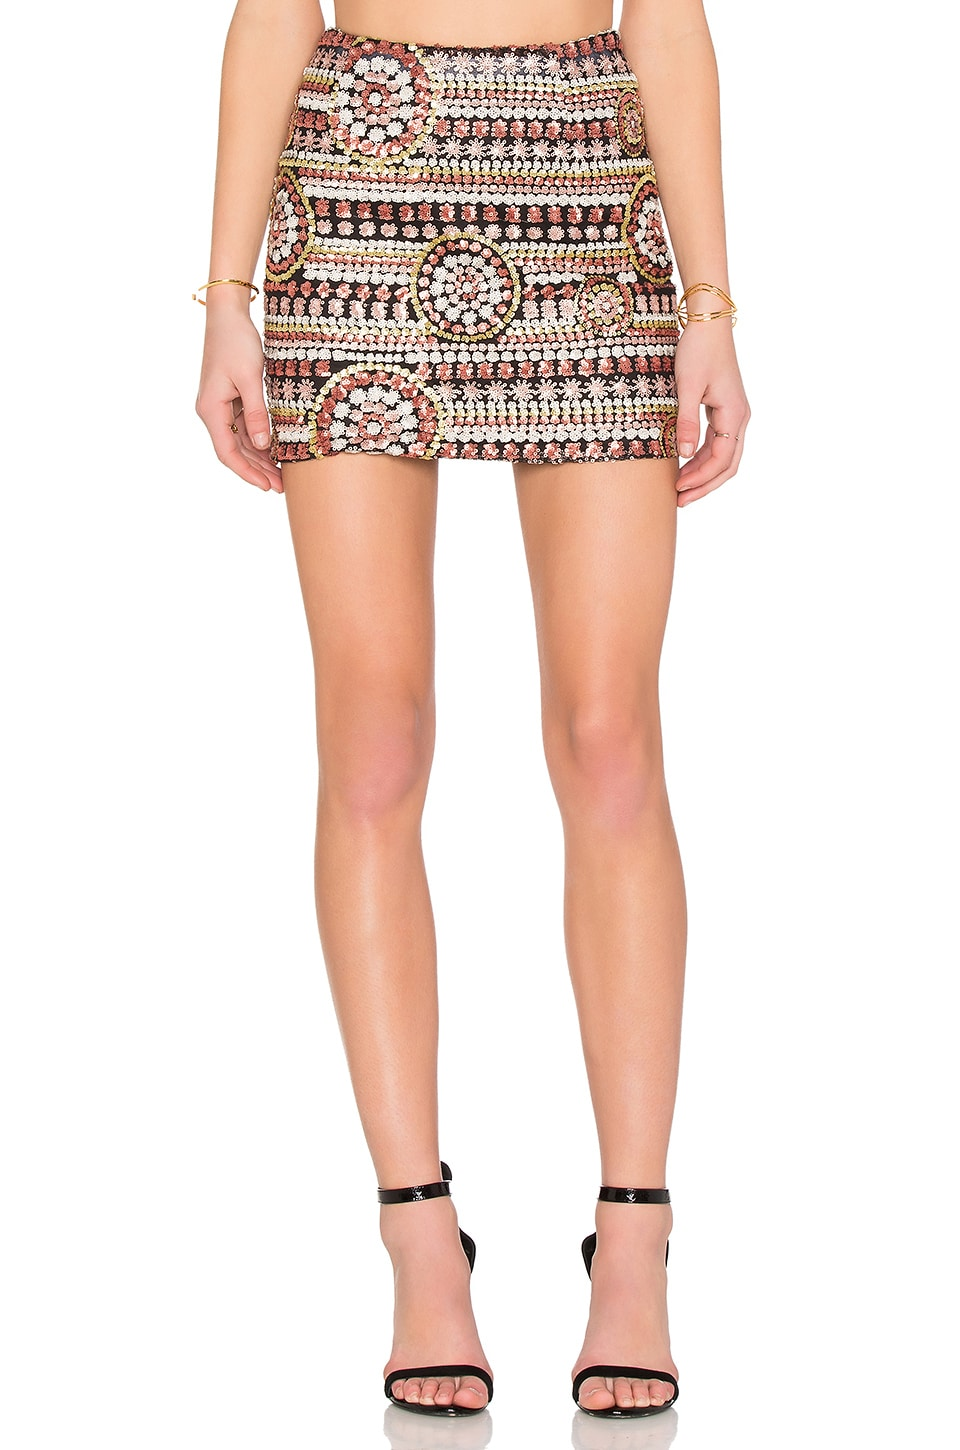 WYLDR Keep It Together Mini Skirt in Multi